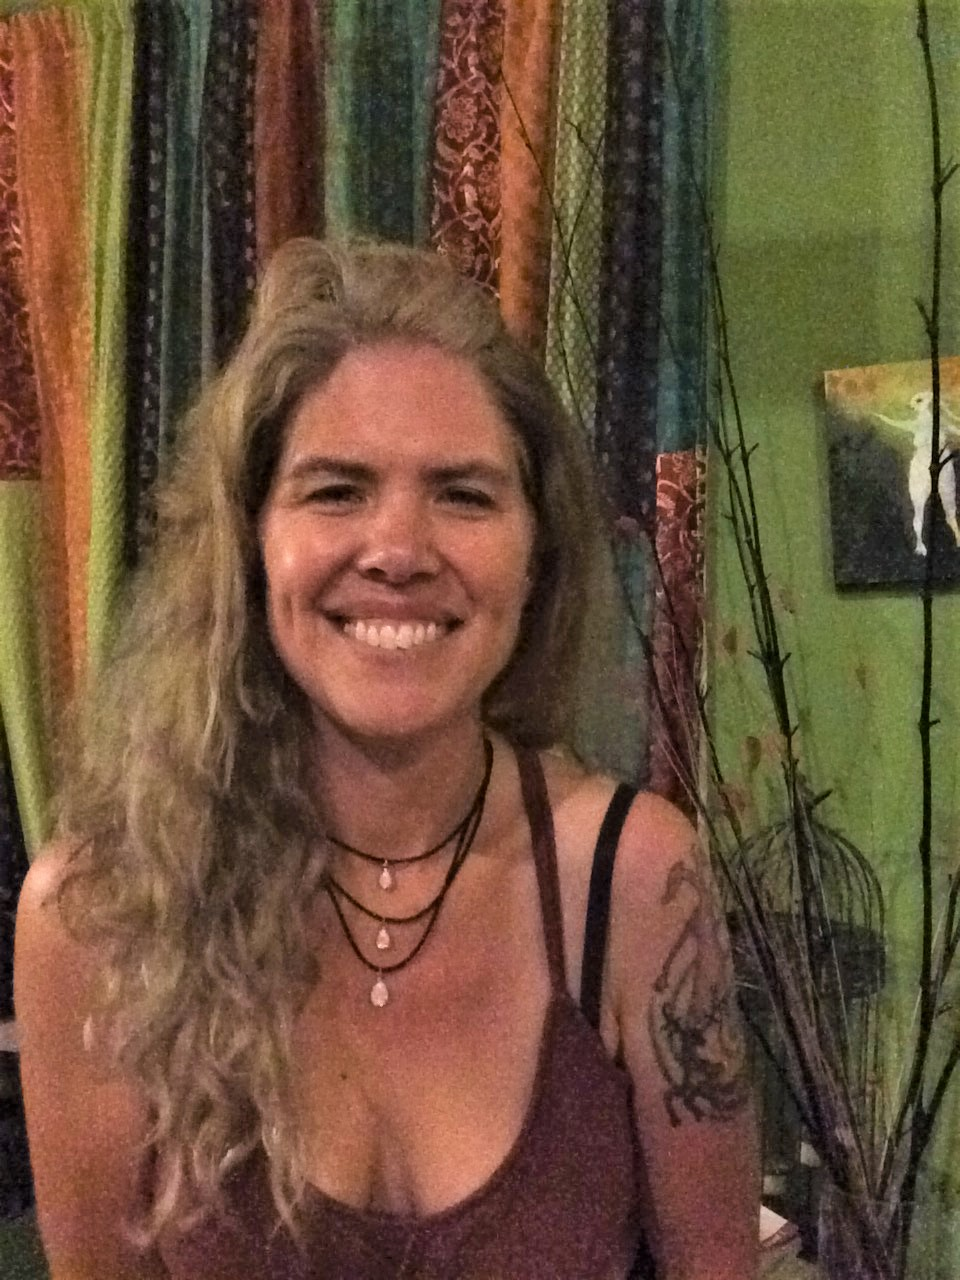 Hilary McLean - Self-Love Lab is run by me, Hilary McLean. I am an artist and art educator living in Southern California. I have a masters in Art Education, and am a certified Expressive Arts Practitioner.